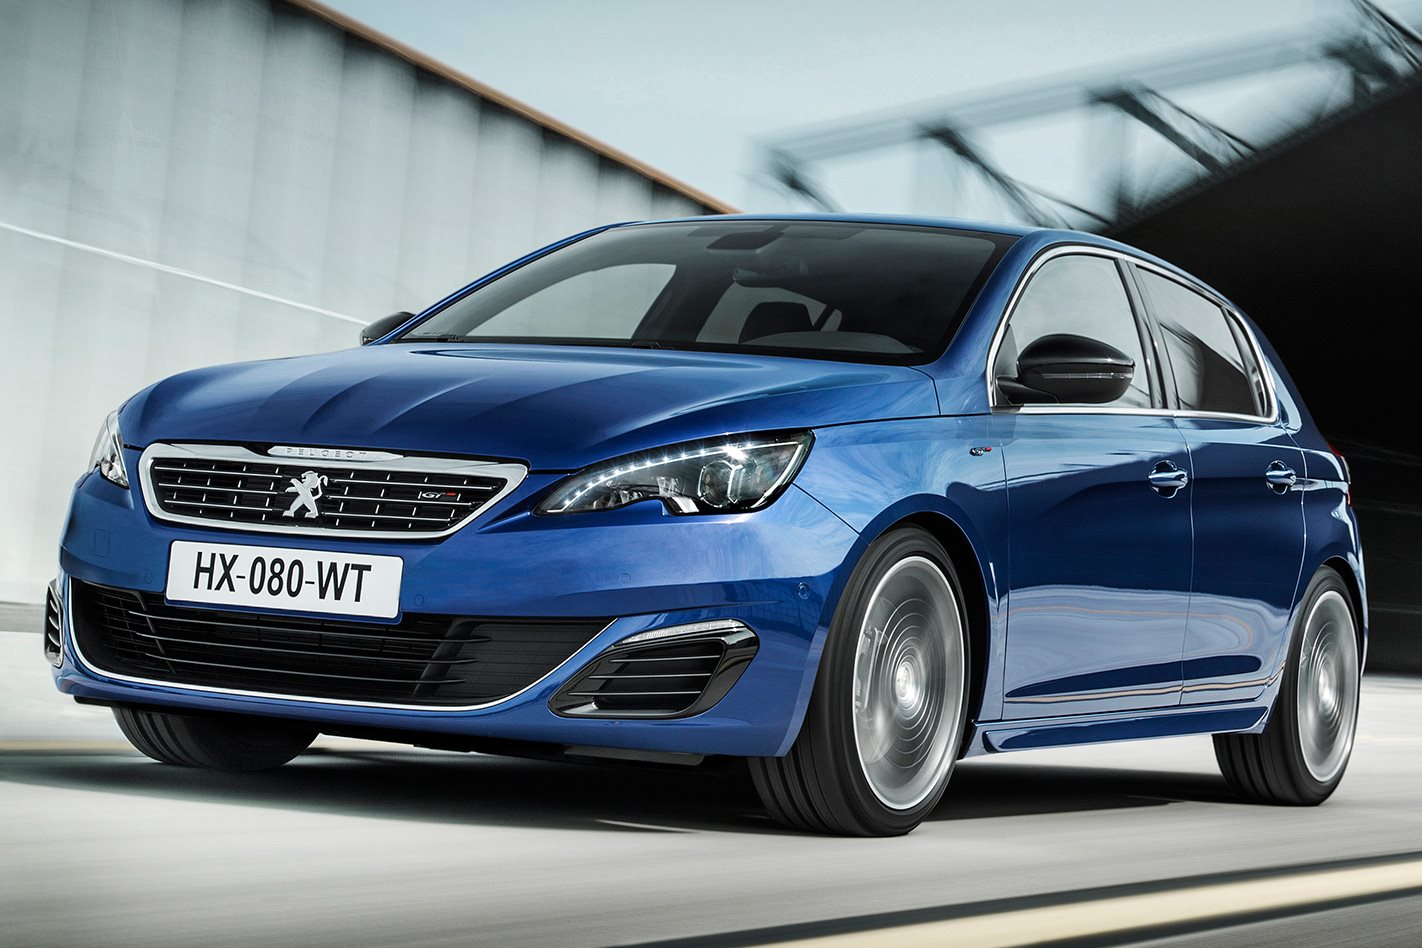 2015 Peugeot 308 Gt First Drive Review